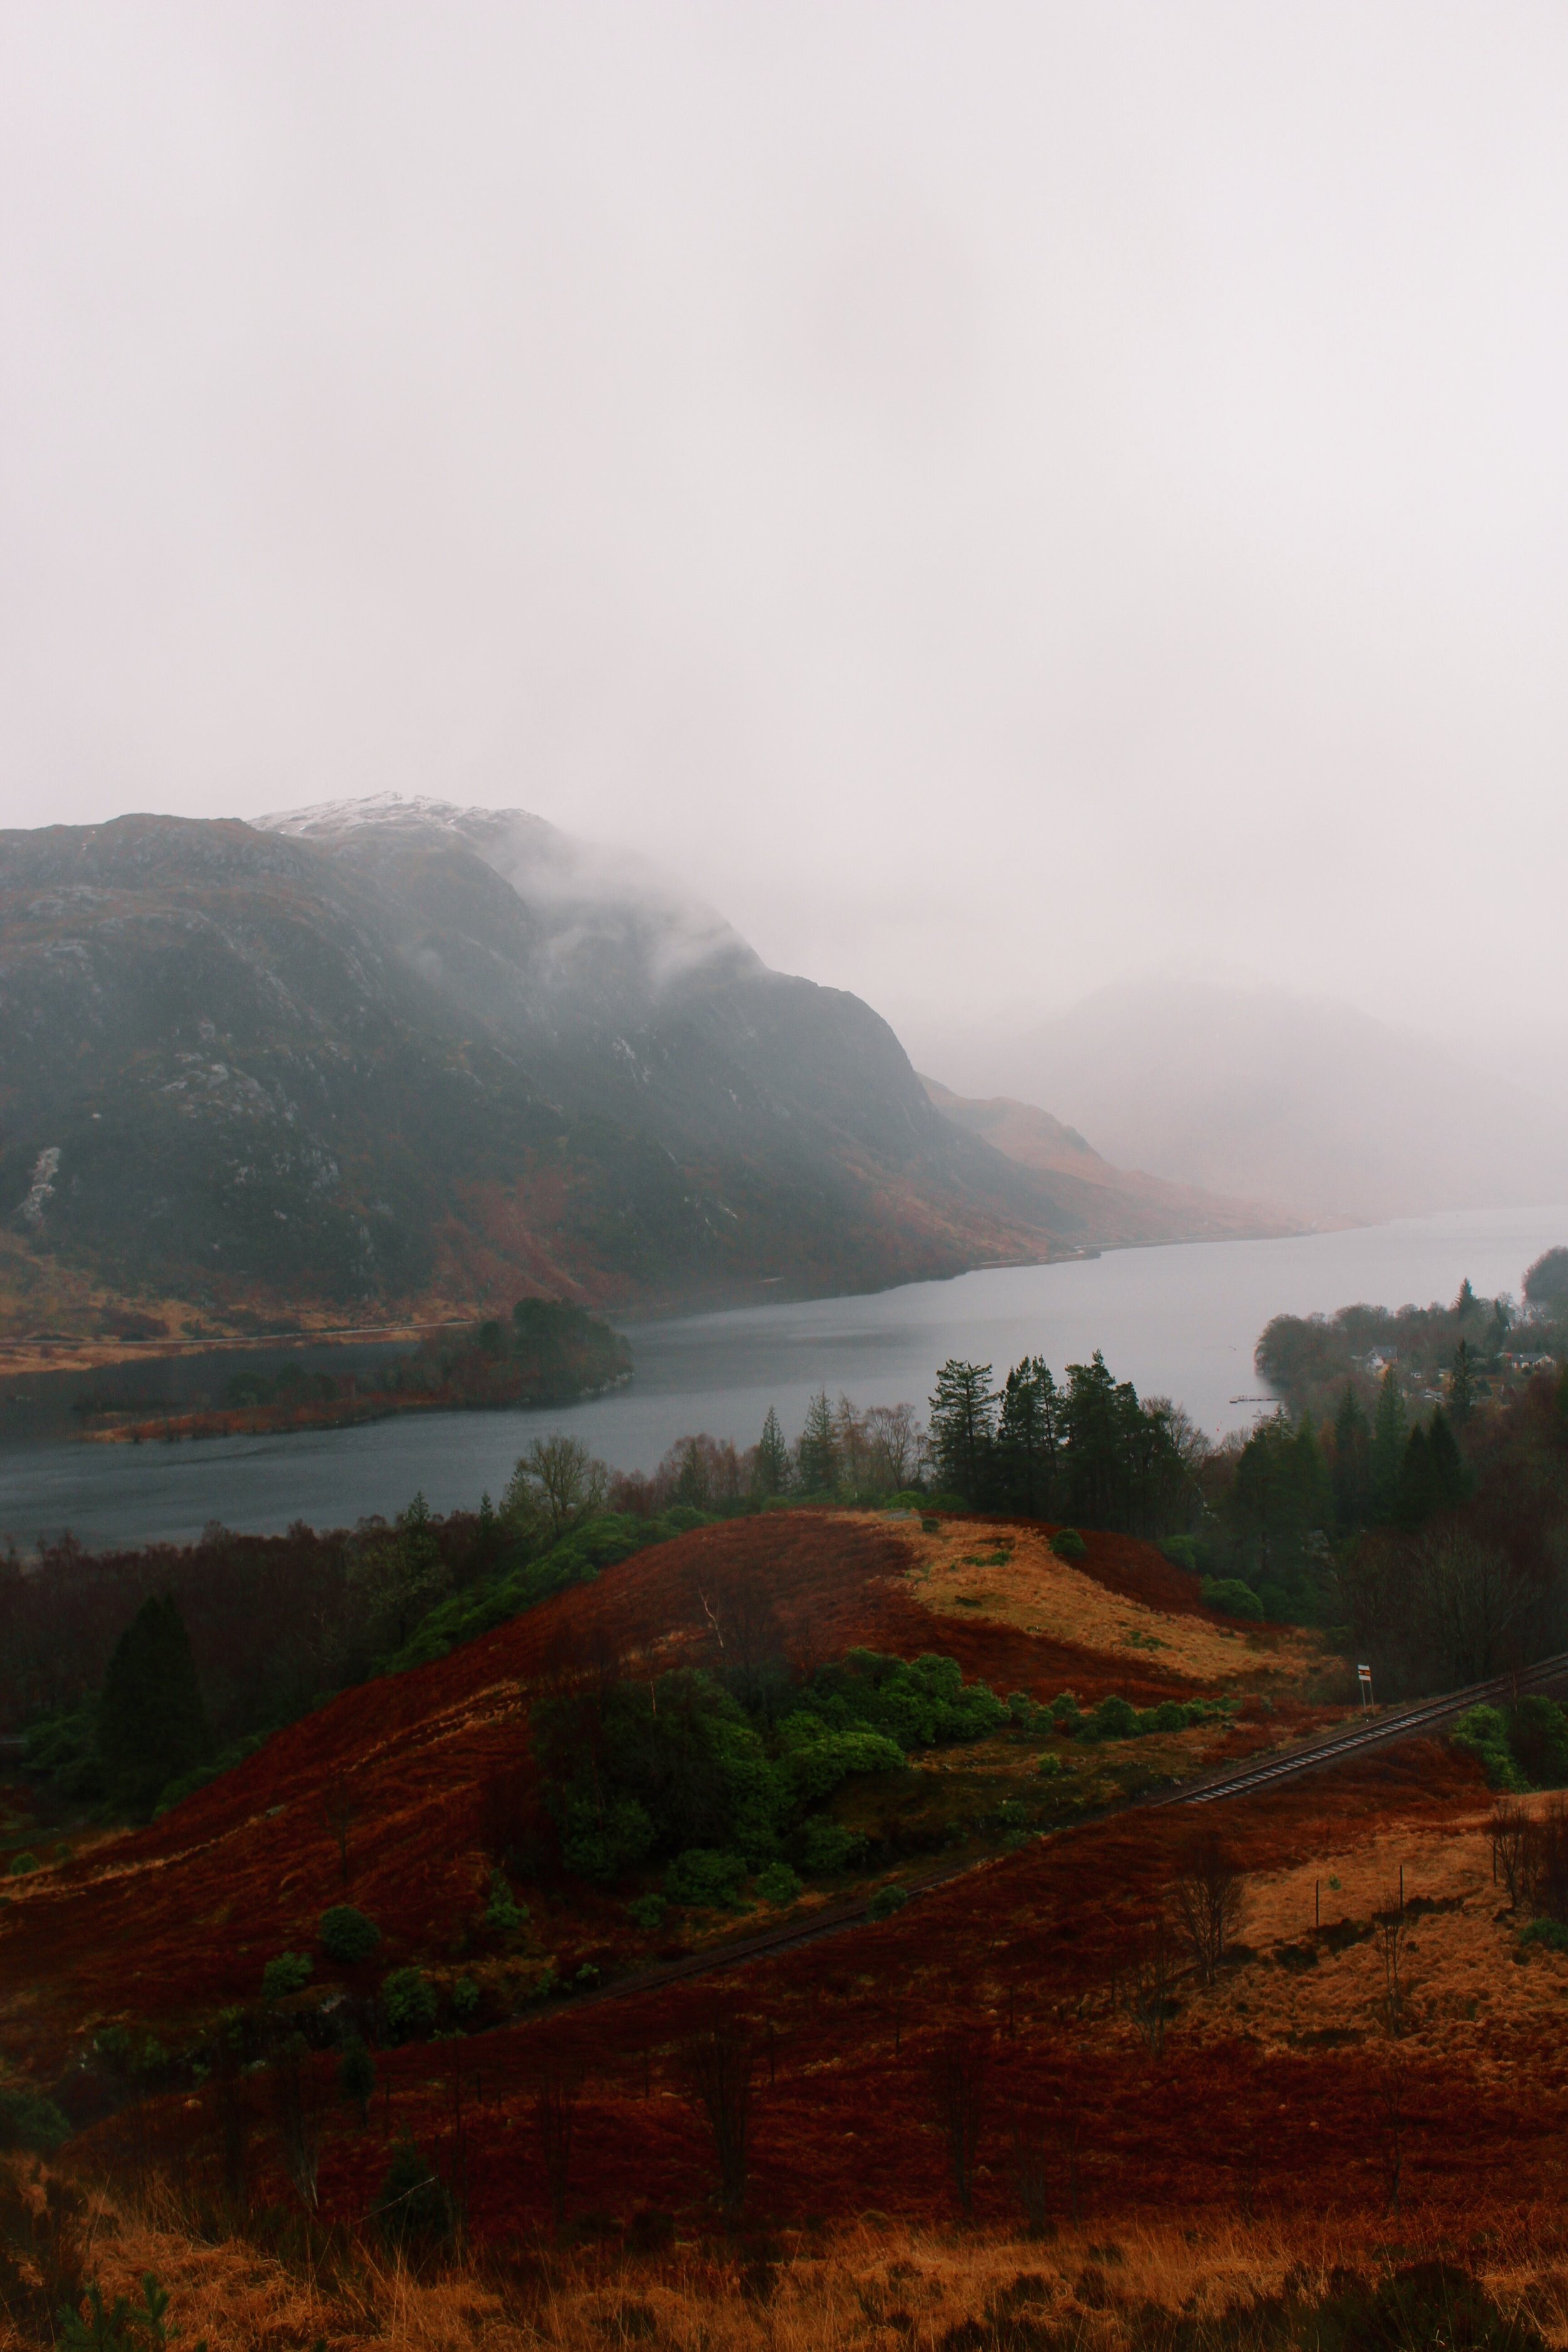 loch shiel and mountains copy.jpg